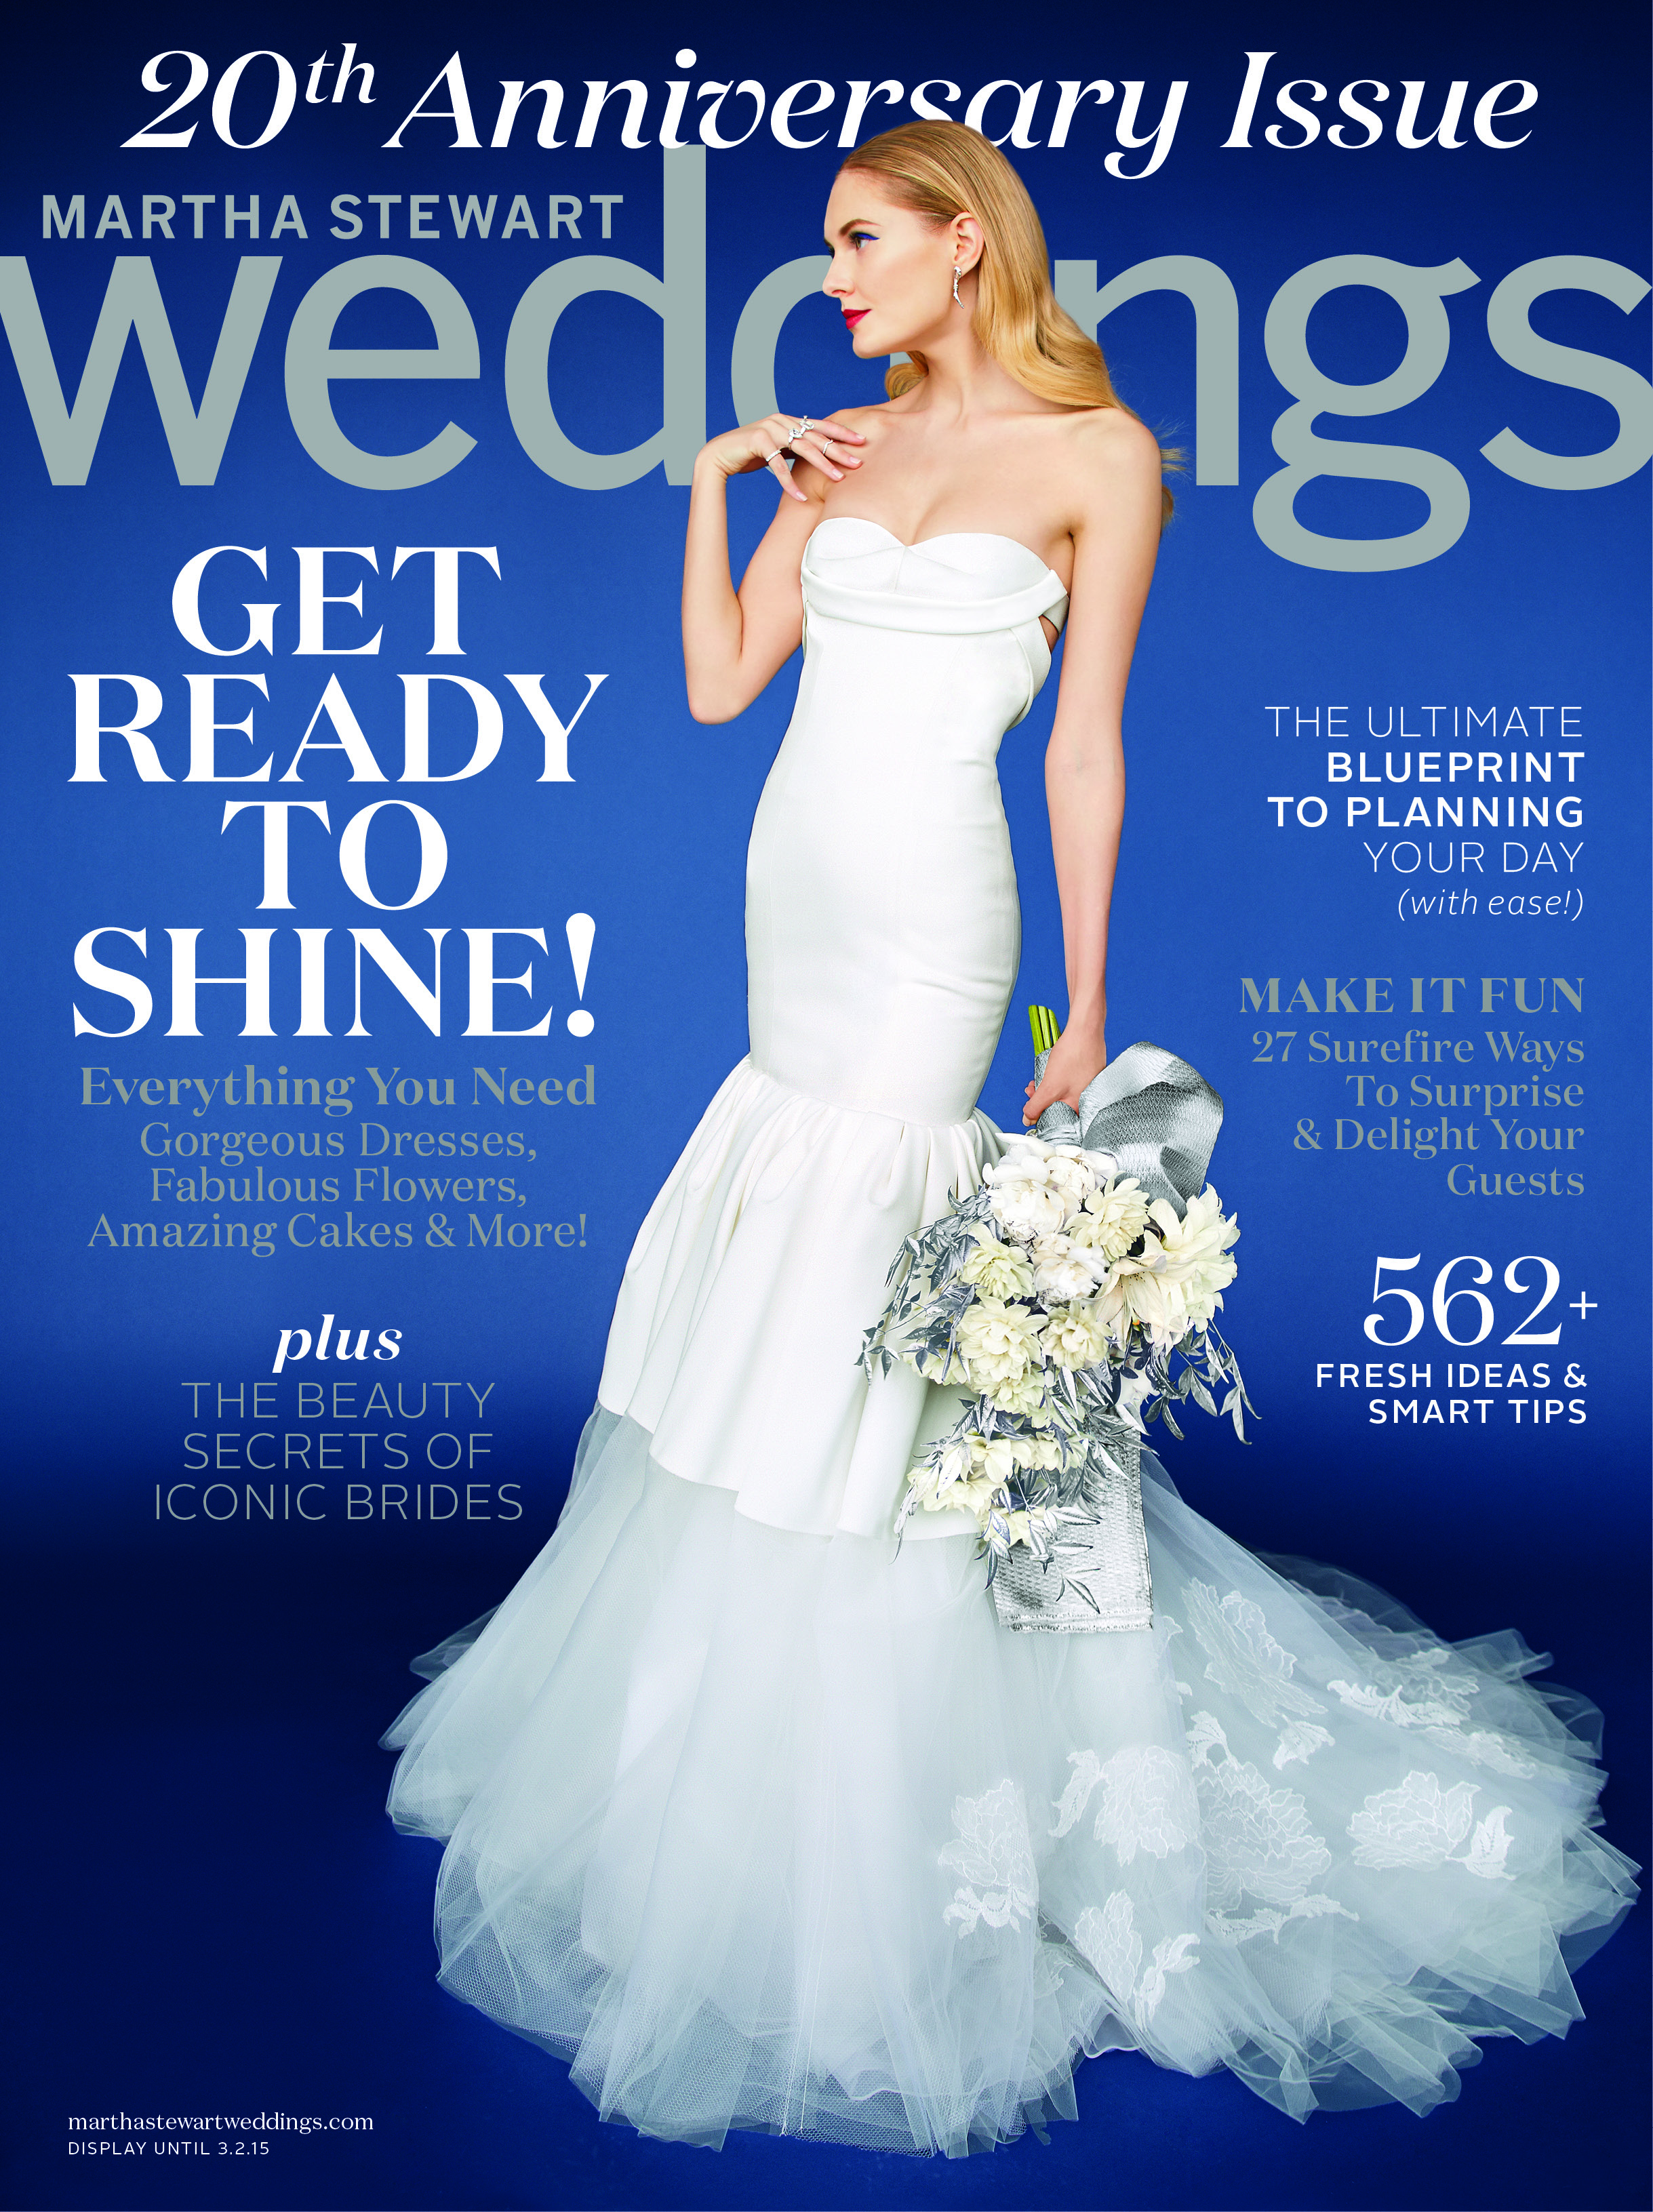 Martha Stewart Weddings: Top Wedding Planners